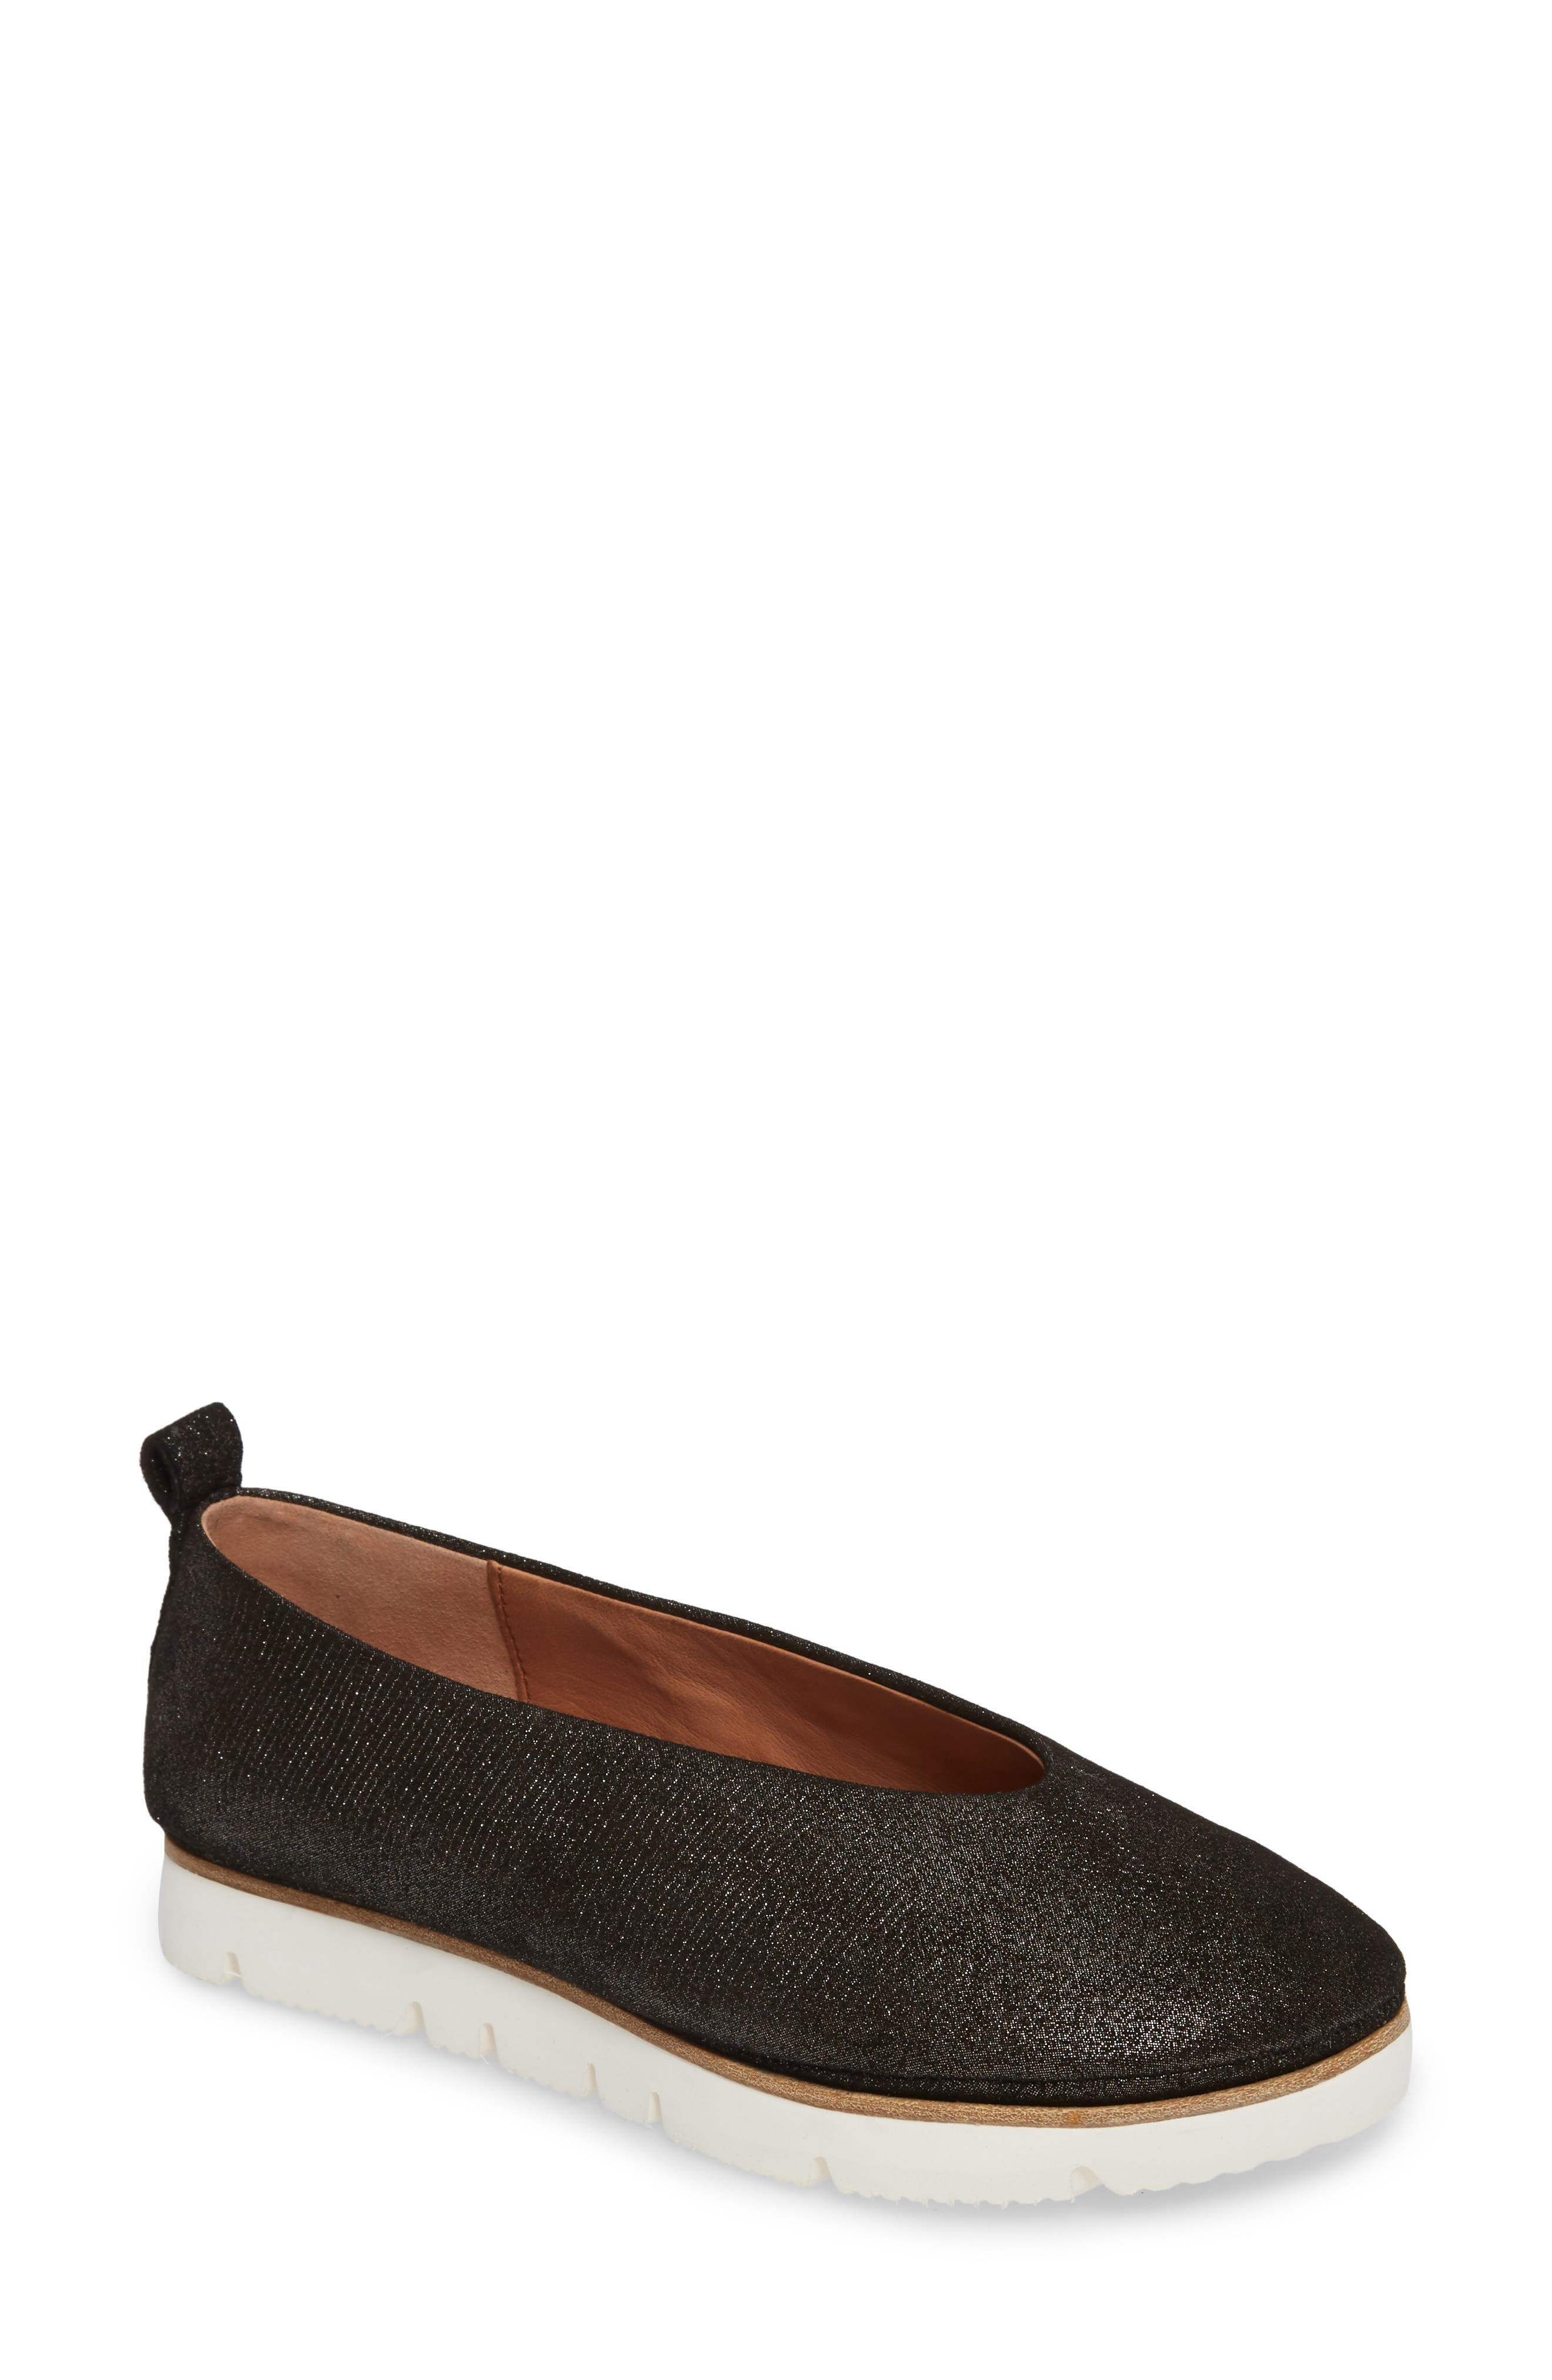 Image of Gentle Souls by Kenneth Cole Demi Slip-On Flat